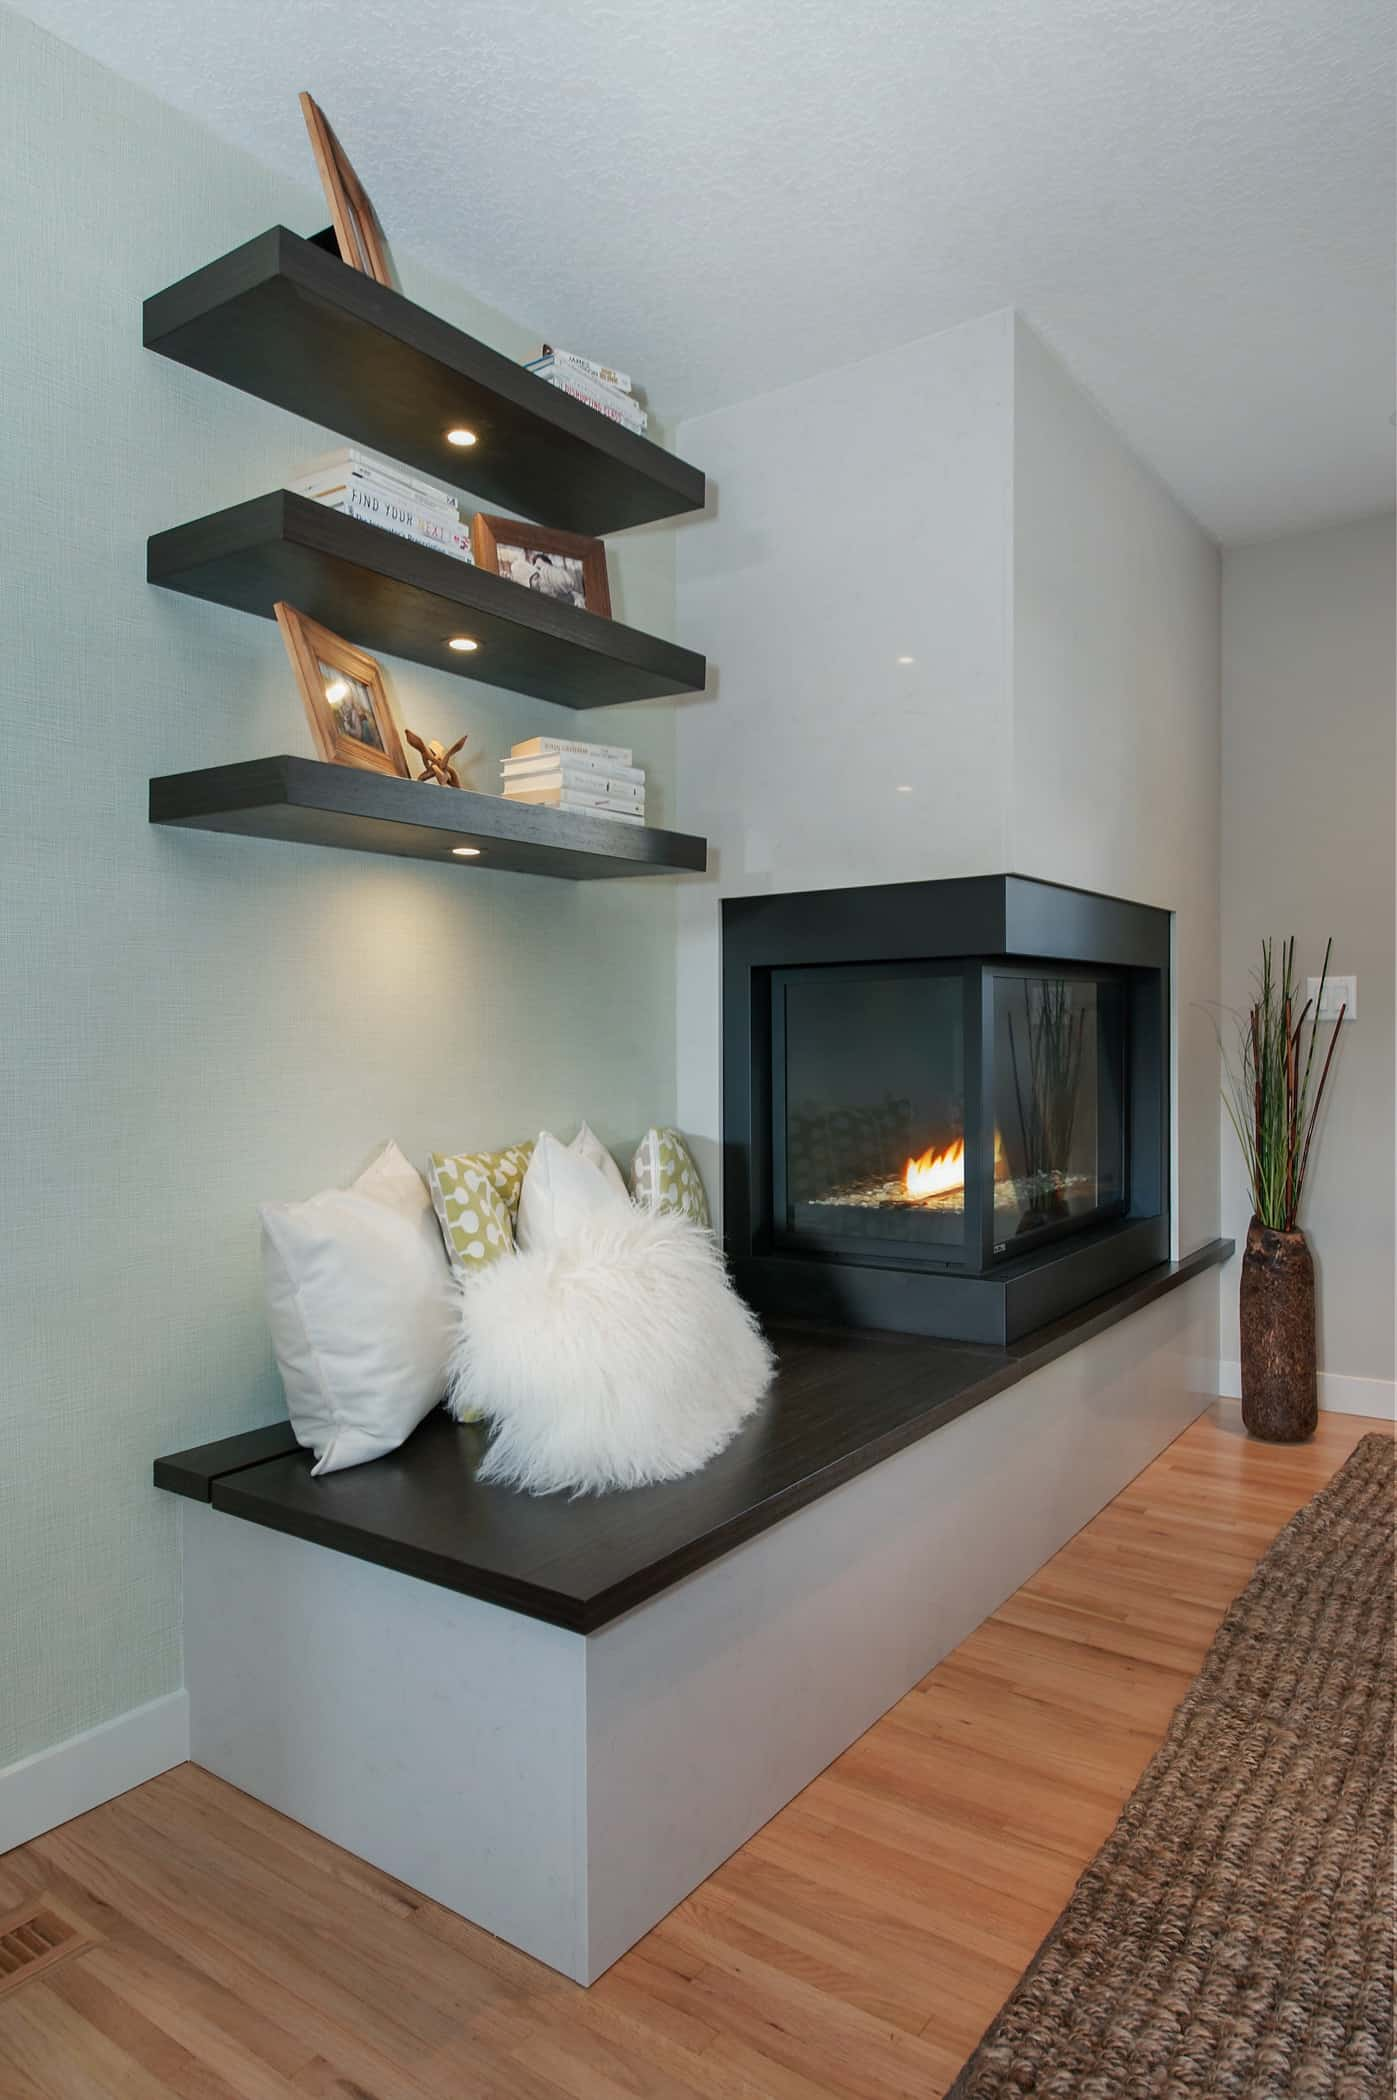 Interior Design by Within Design, Renovation by Envision Custom Renovations